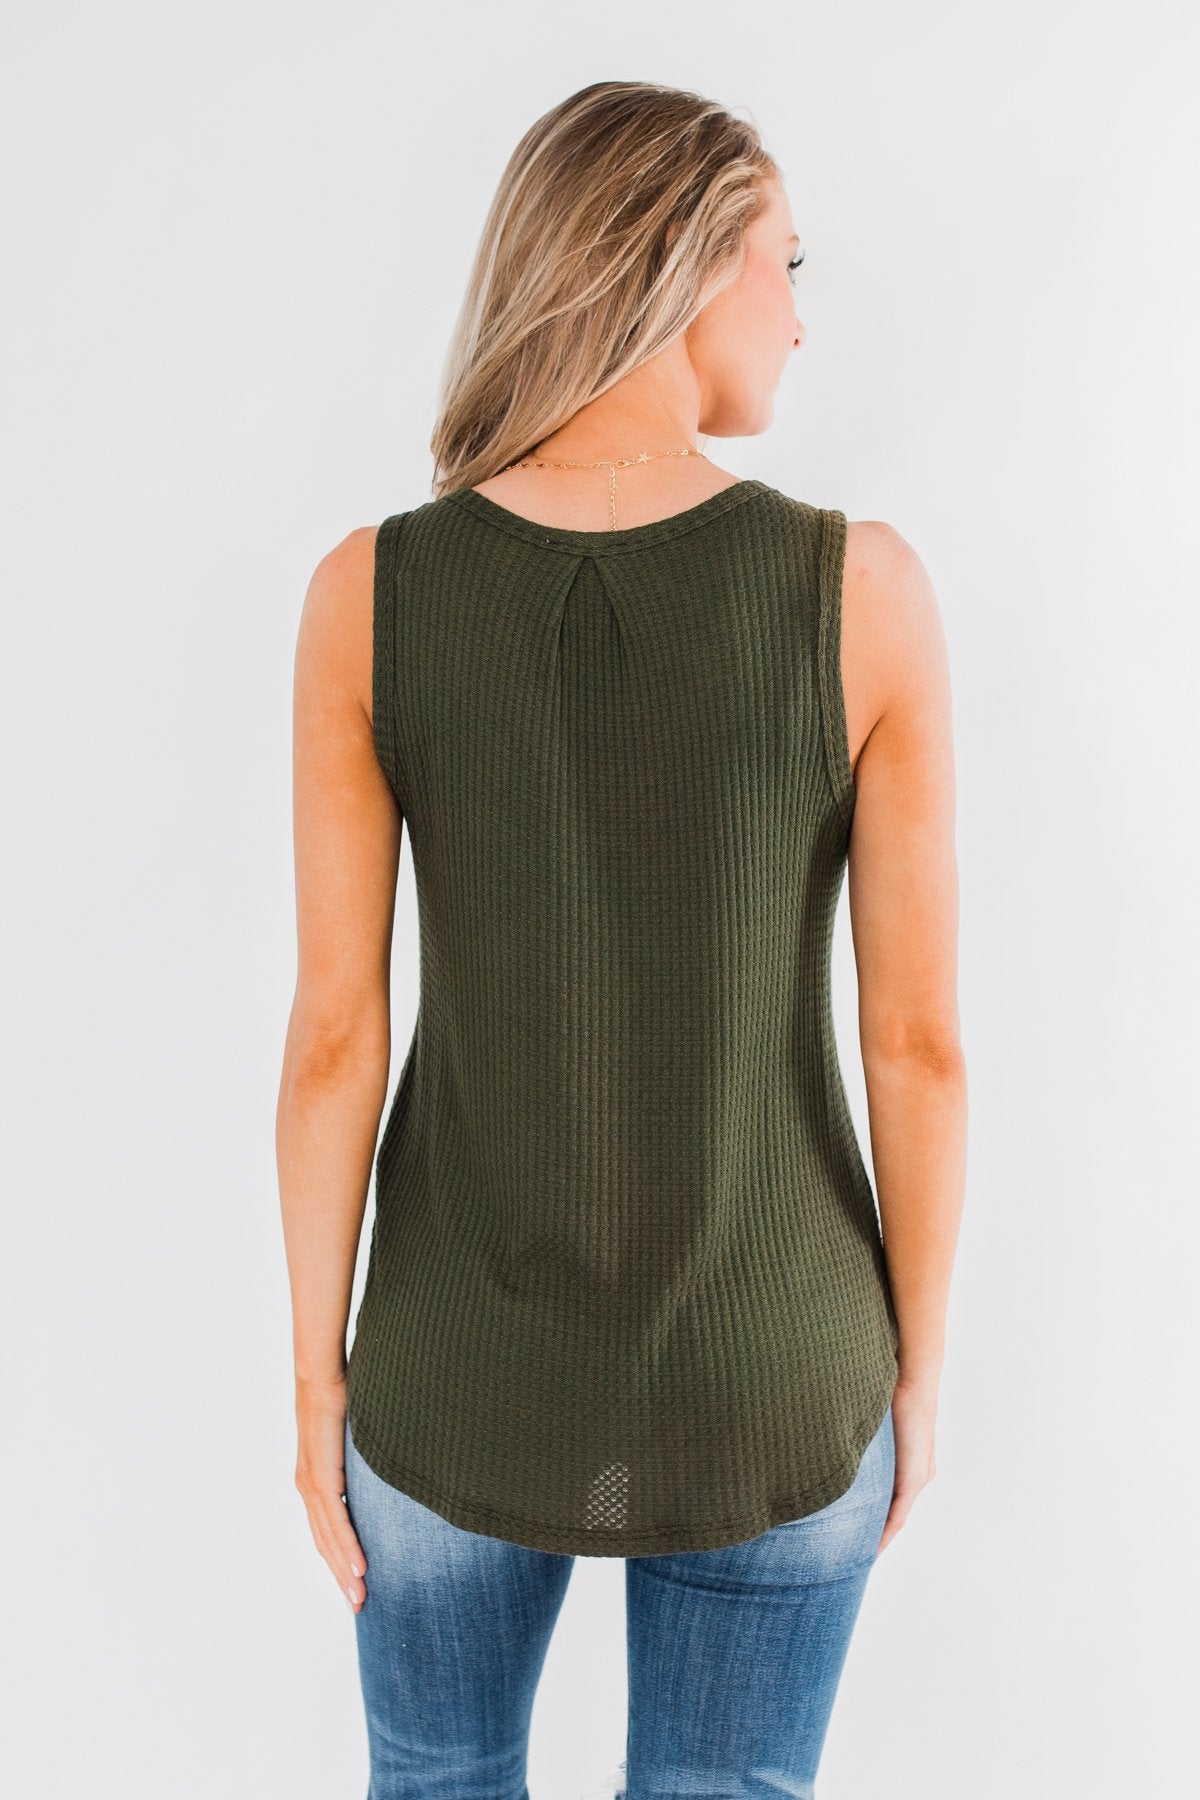 Wouldn't Trade It For Anything Tank Top- Dark Olive